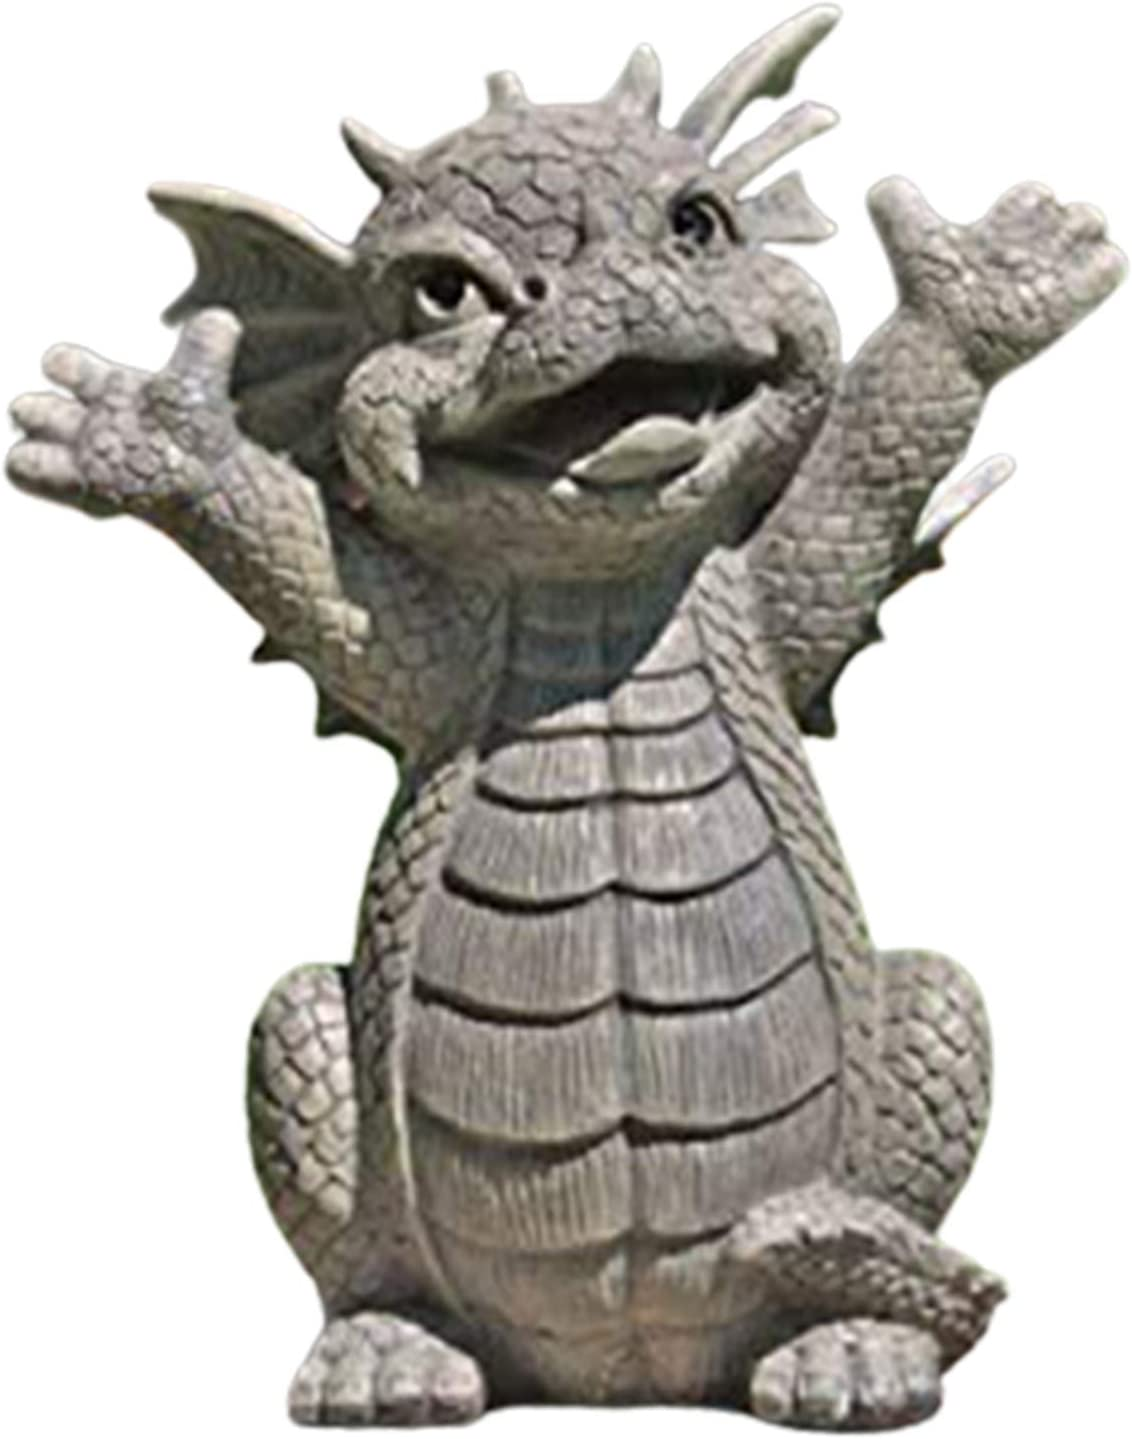 Meditated Dragon Statue, Resin Collecting & Decoration Ornament for Outdoor Garden Yard (16cm)